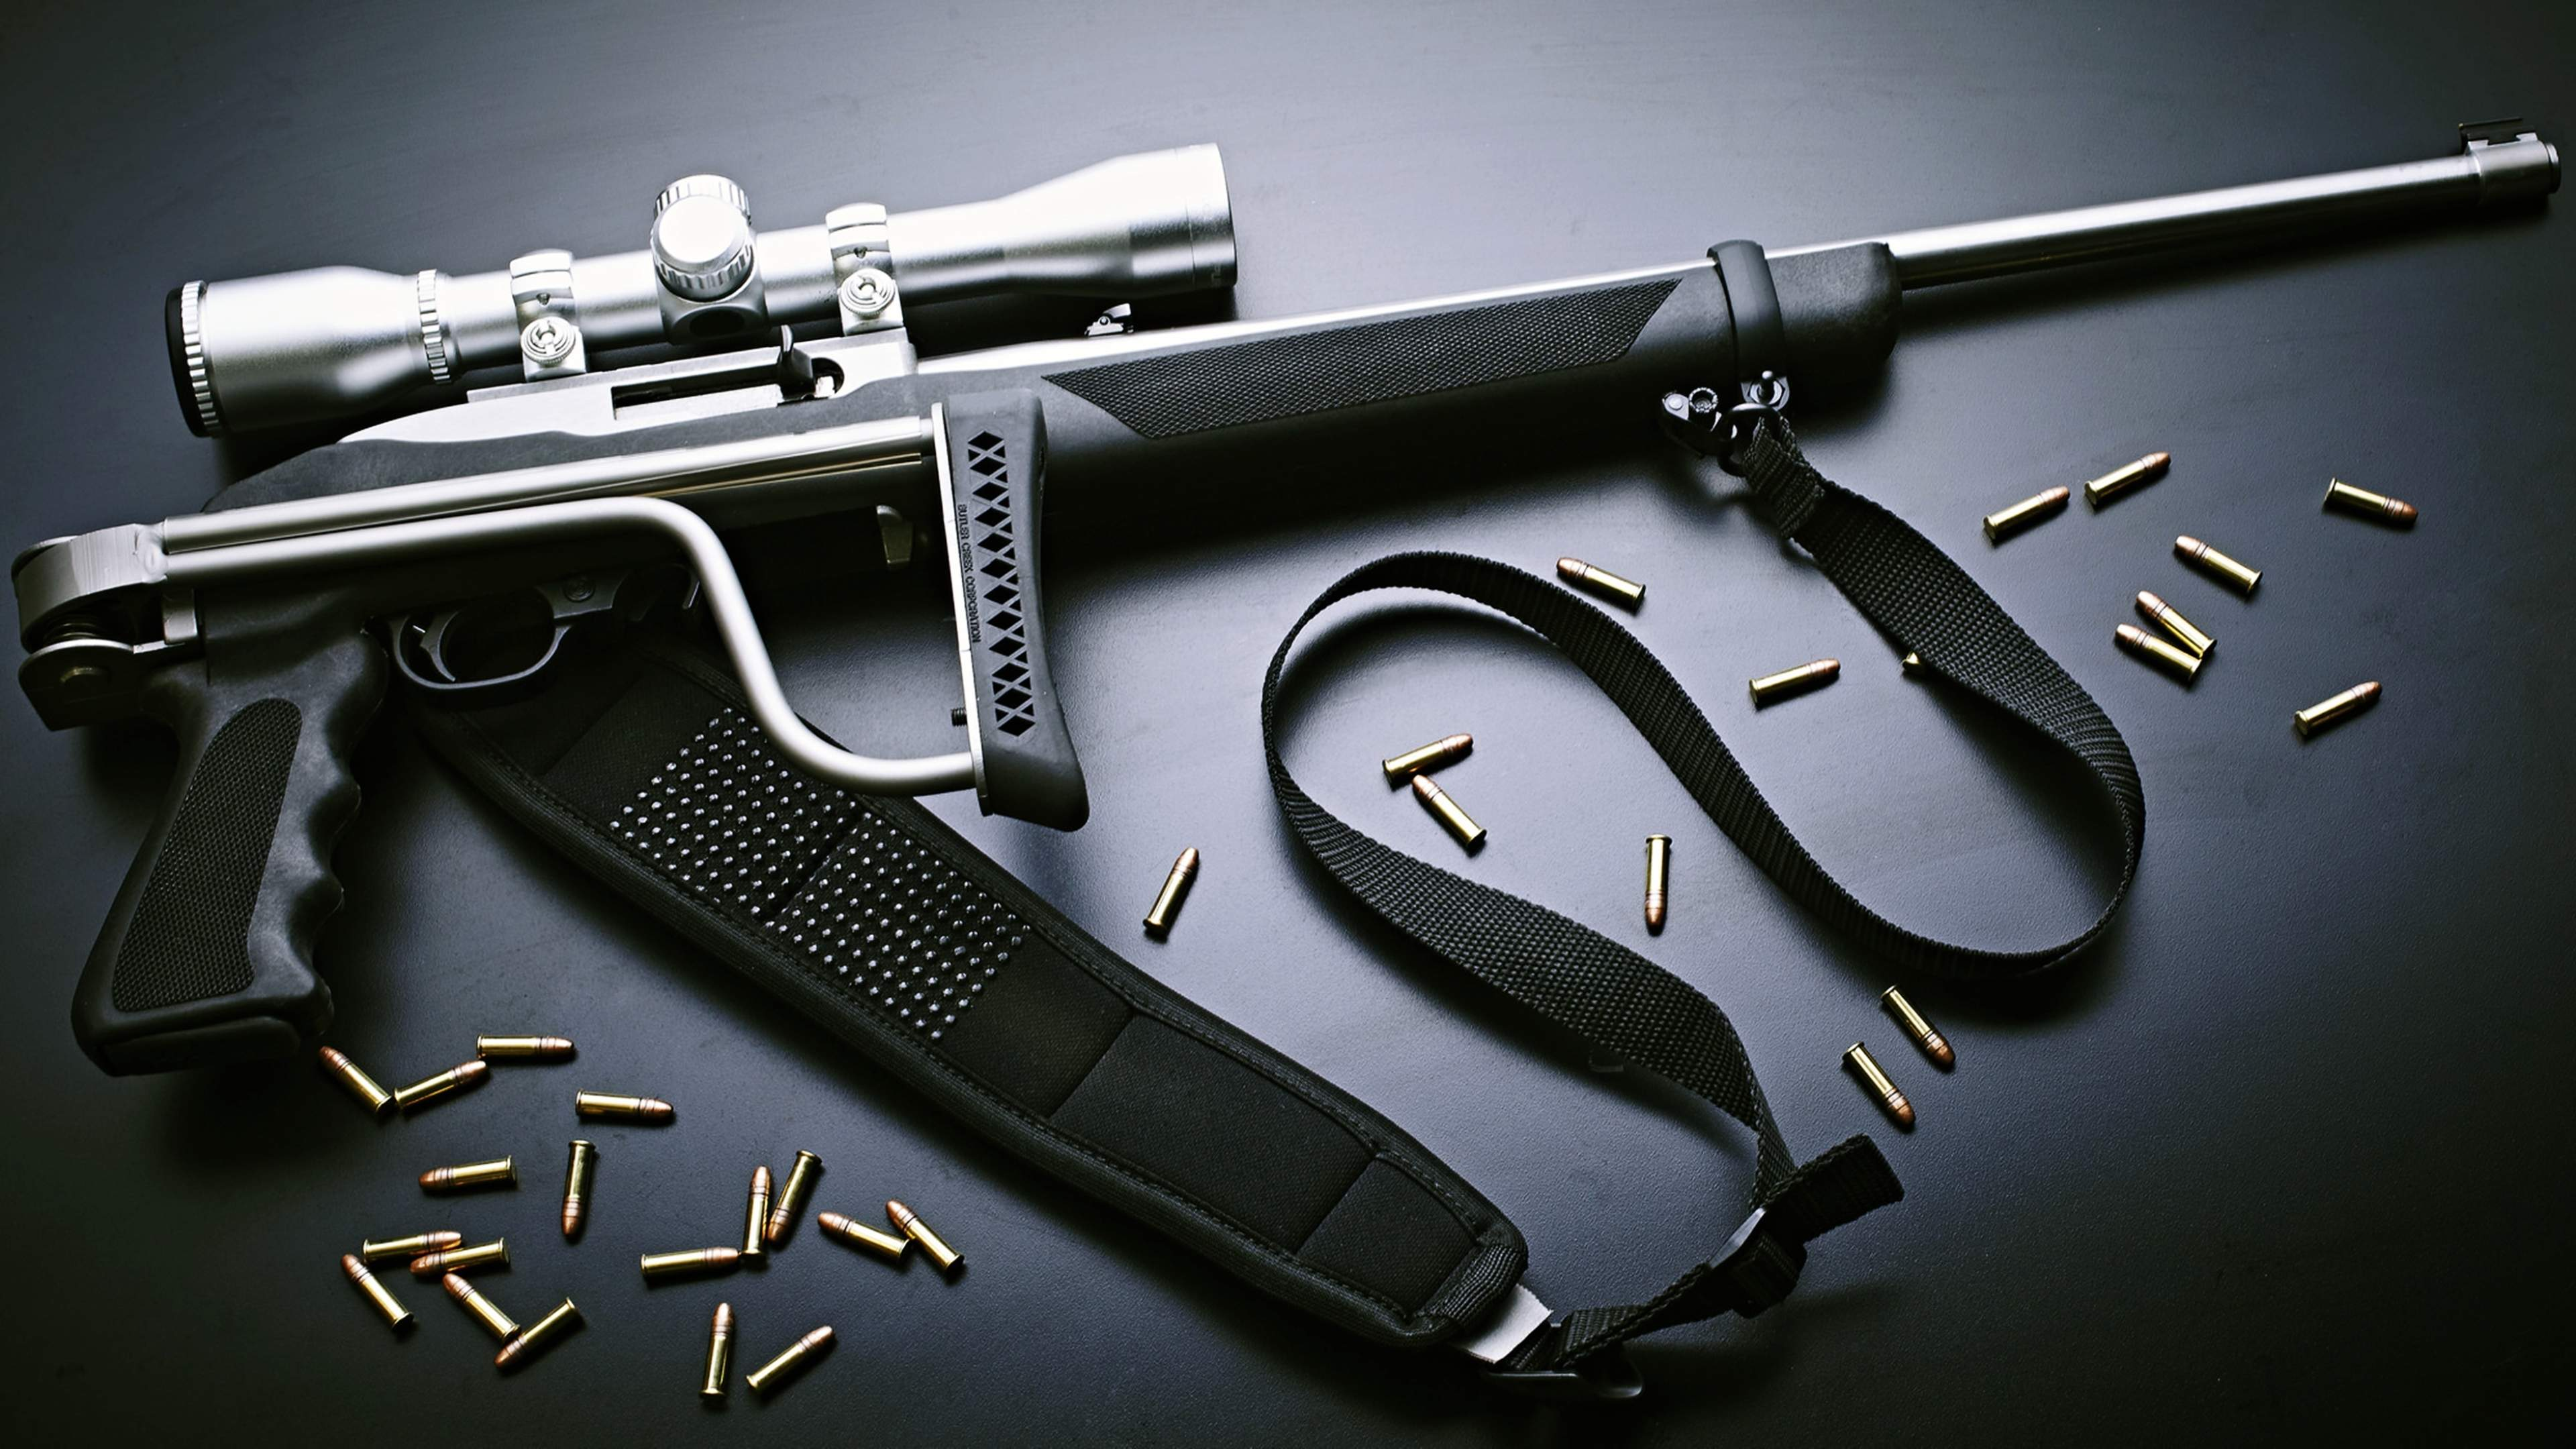 Guns Hd Wallpapers posted by John Sellers